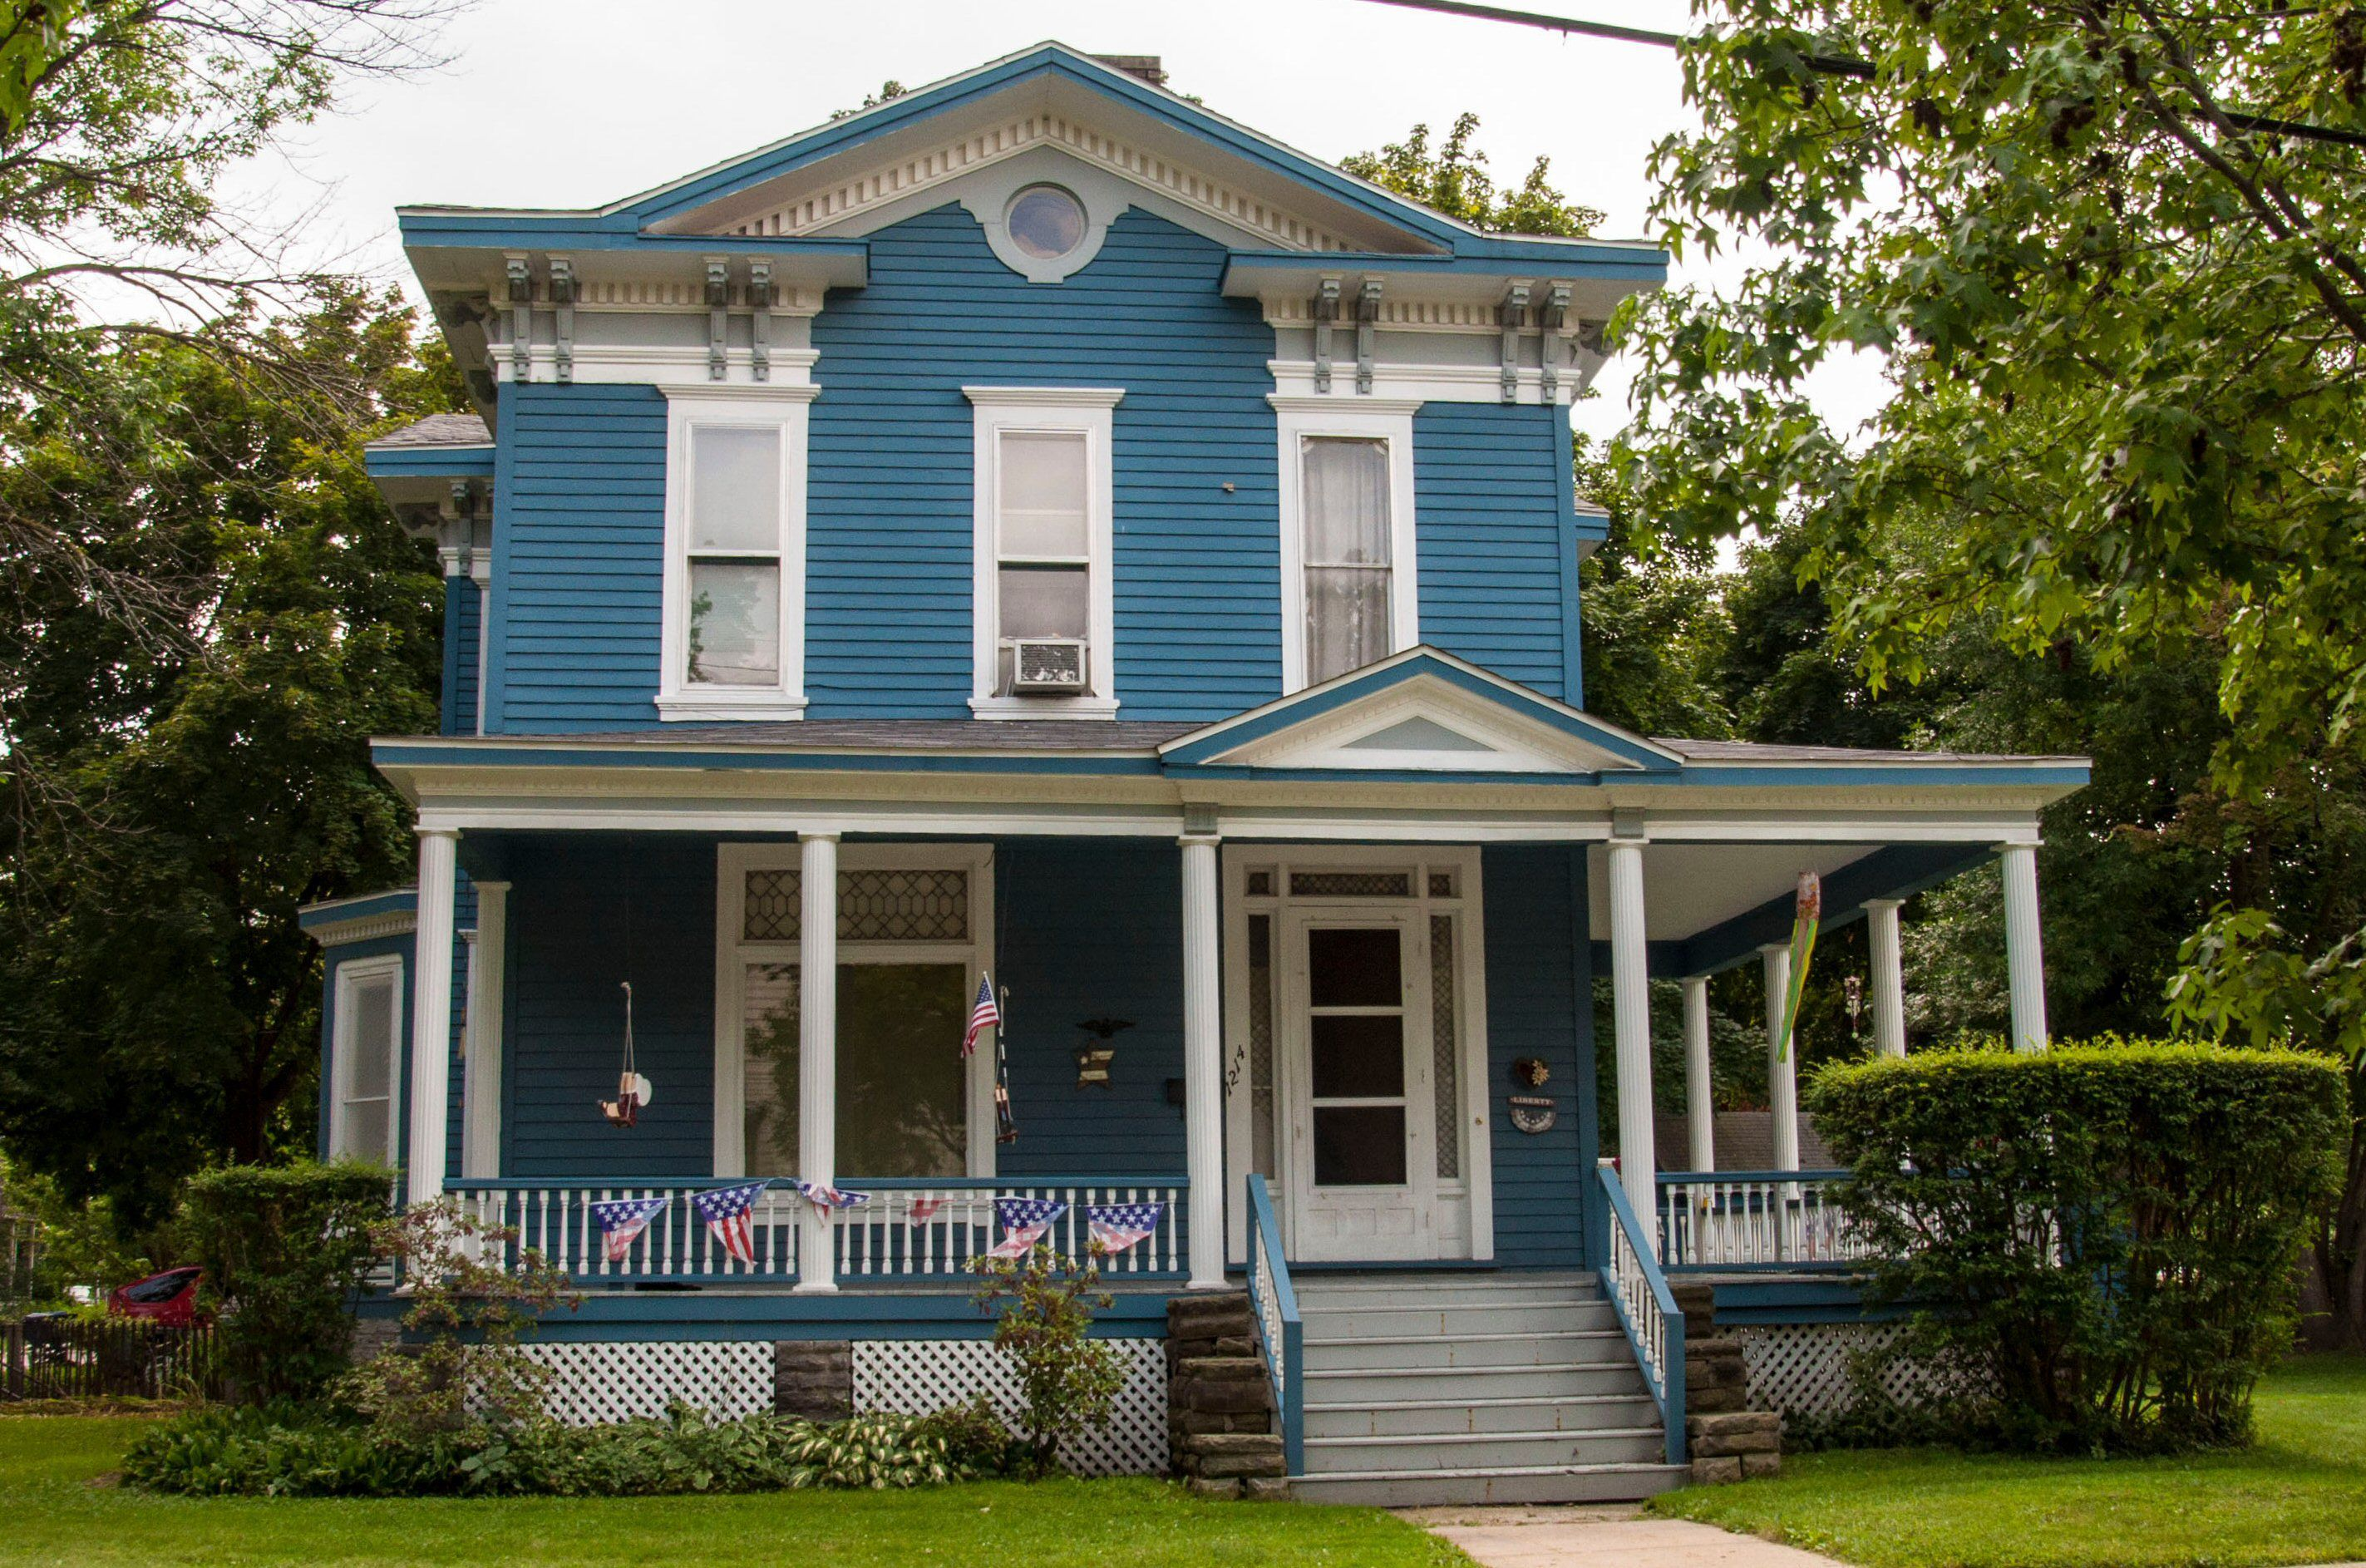 What Shade Of Blue Should You Paint Your House Exterior House Colors House Colors House Exterior